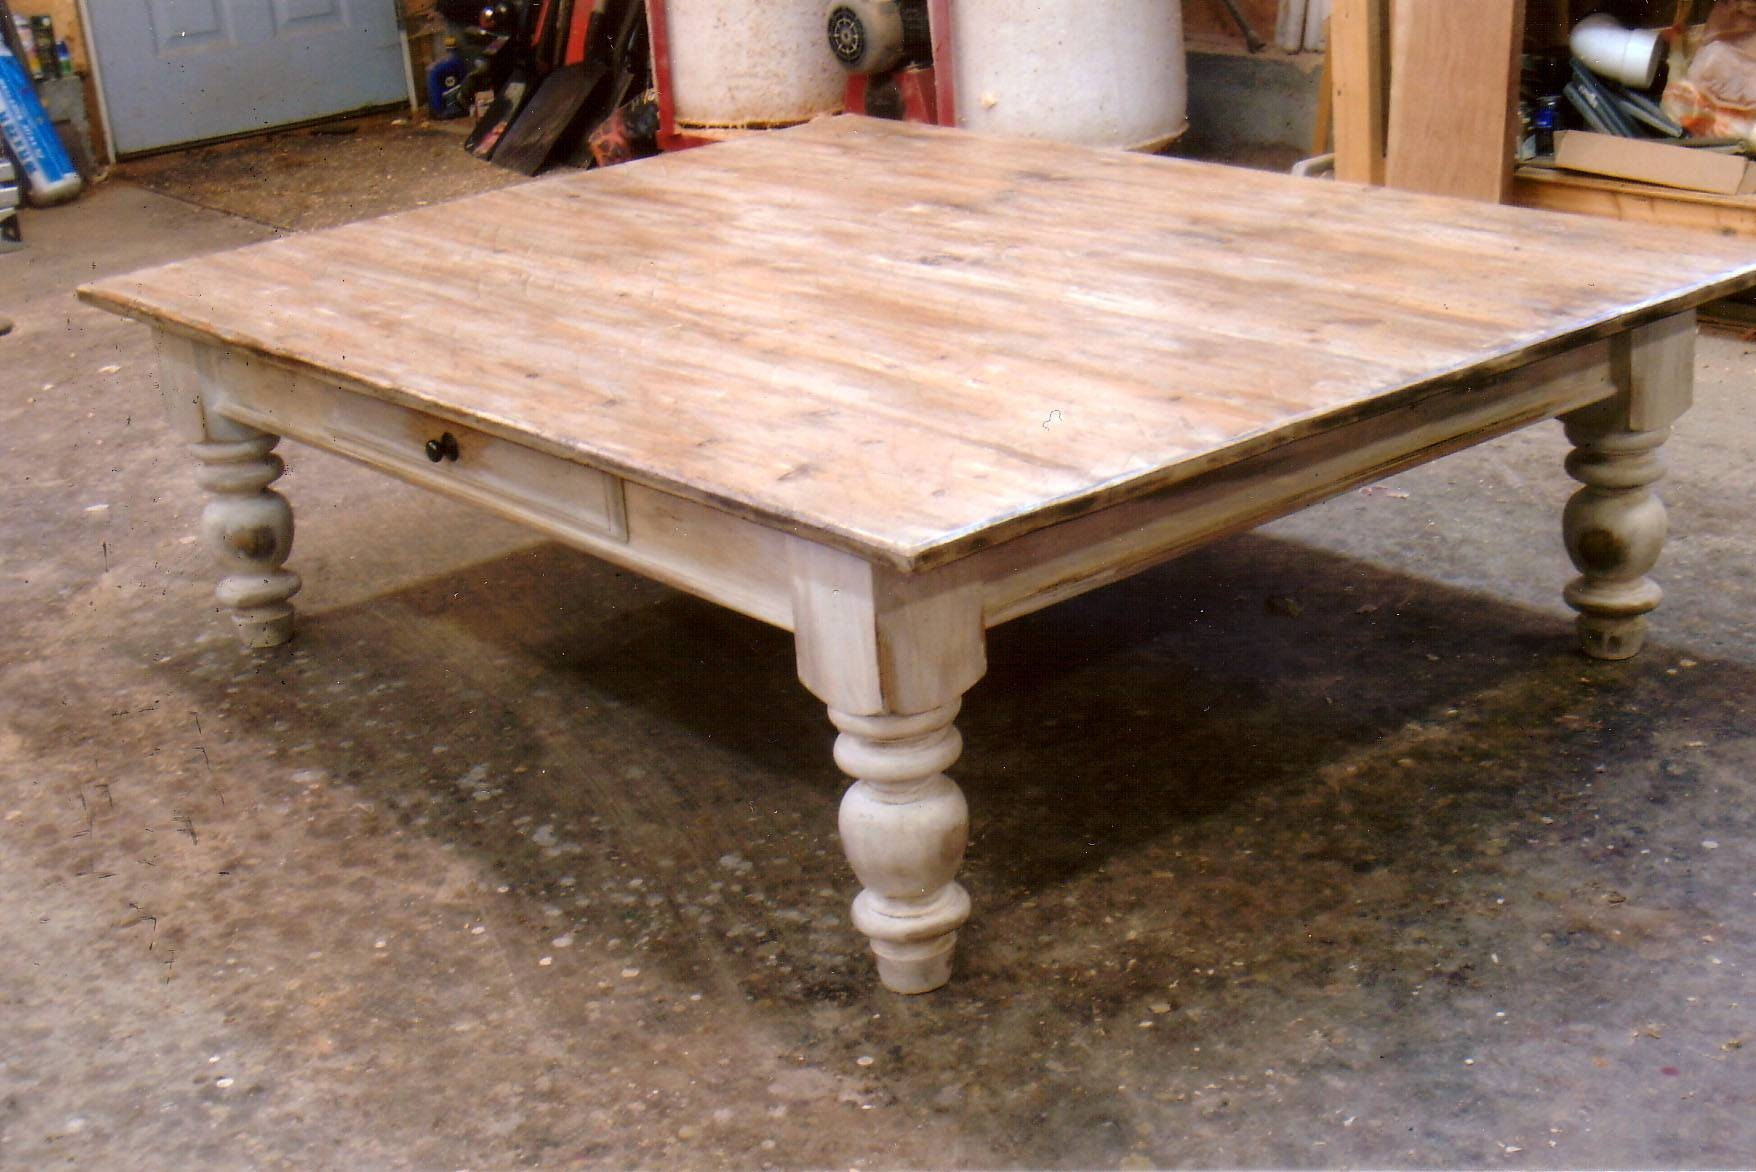 Low Square Dark Wood Coffee Table | Coffee Tables Decoration Within Large Square Low Coffee Tables (View 10 of 30)